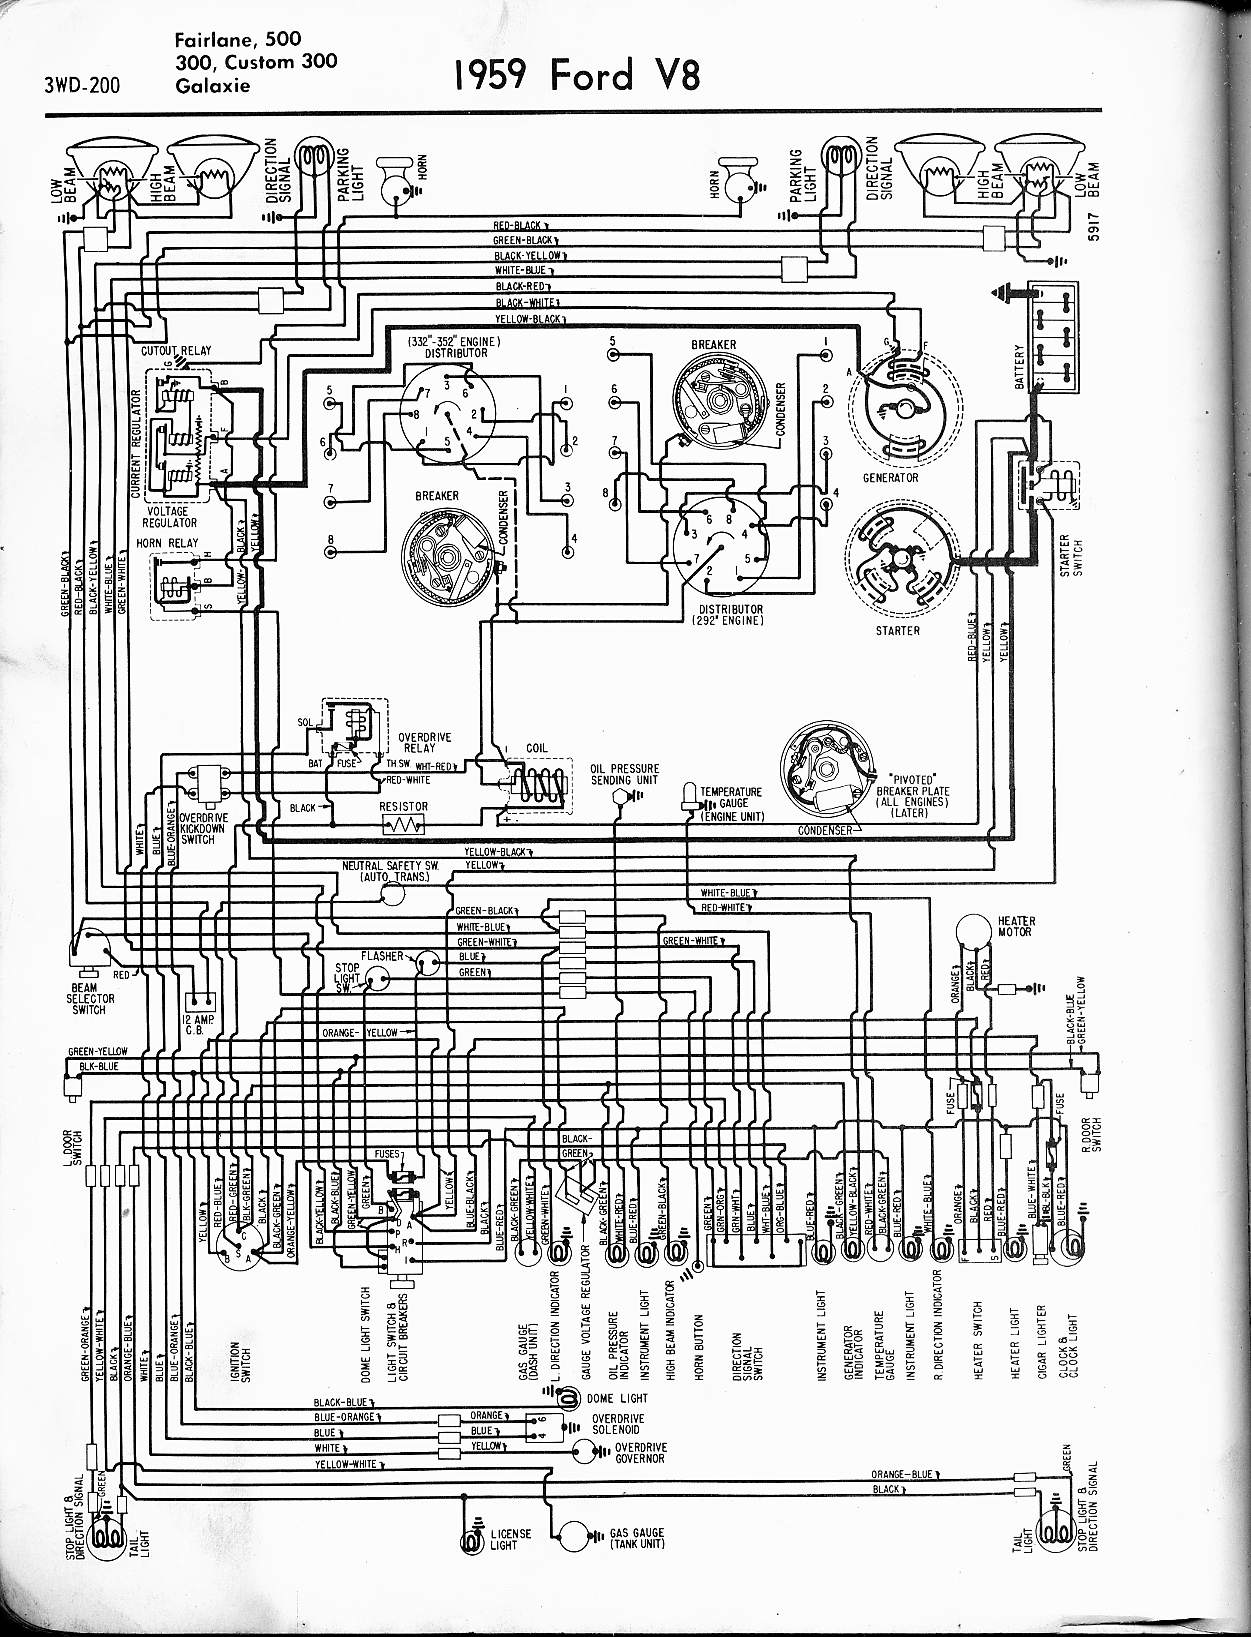 1956 Ford Mainline Wiring Diagram Content Resource Of Truck Ignition Fairlane Detailed Schematics Rh Mrskindsclass Com Switch